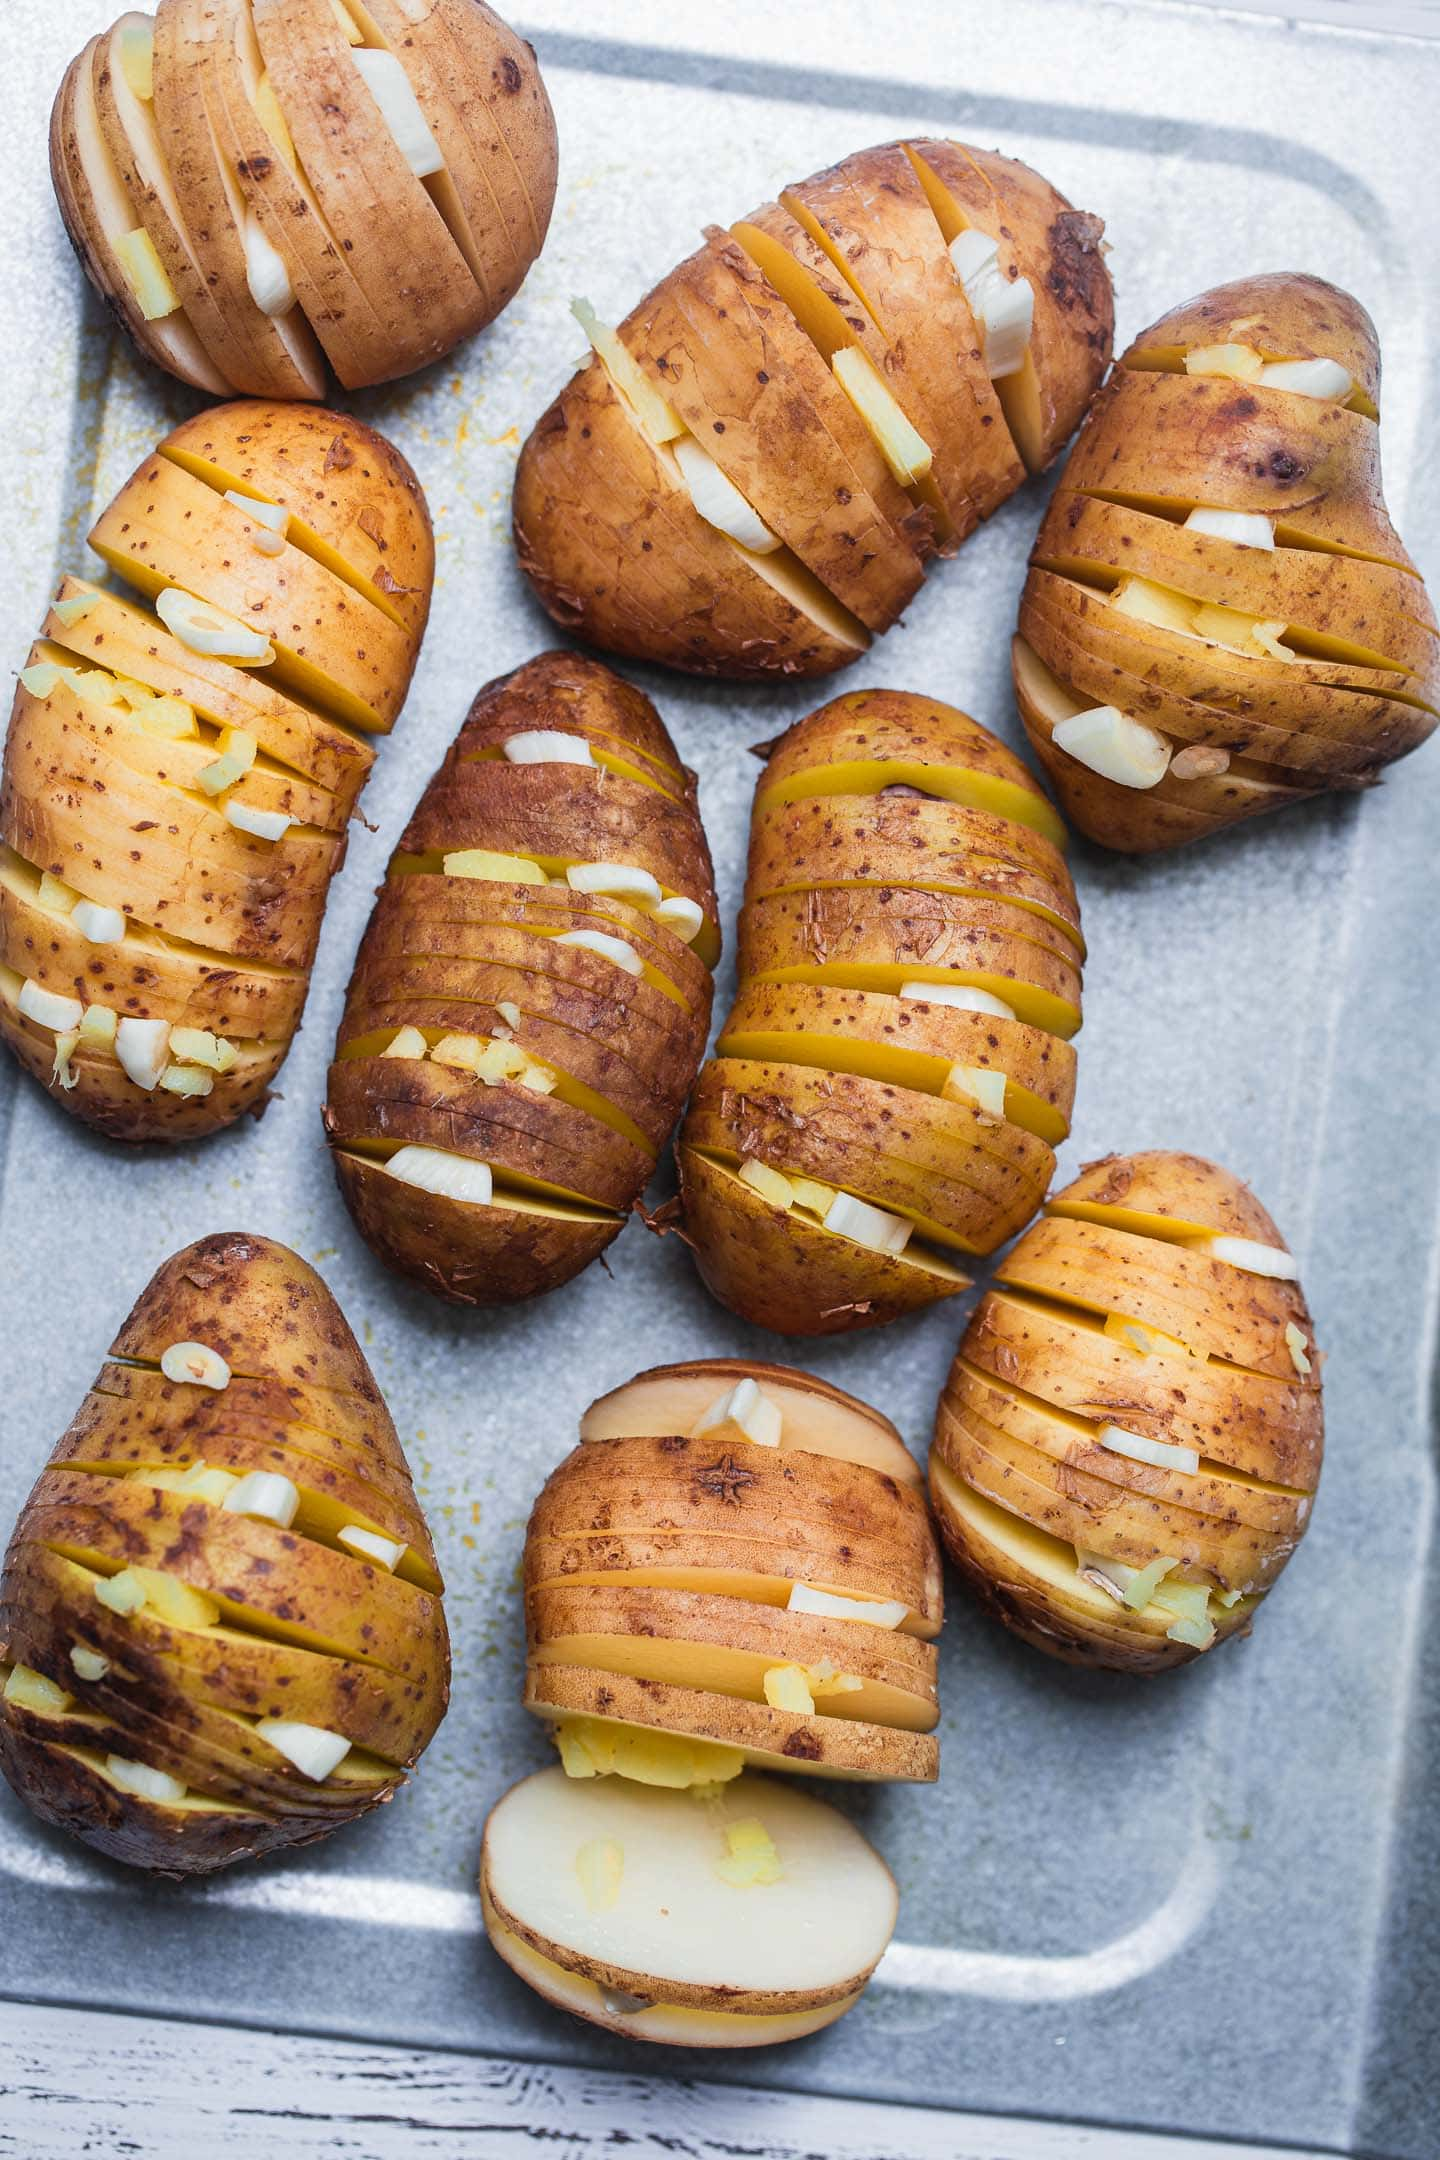 Hasselback potatoes with garlic and ginger on a baking tray